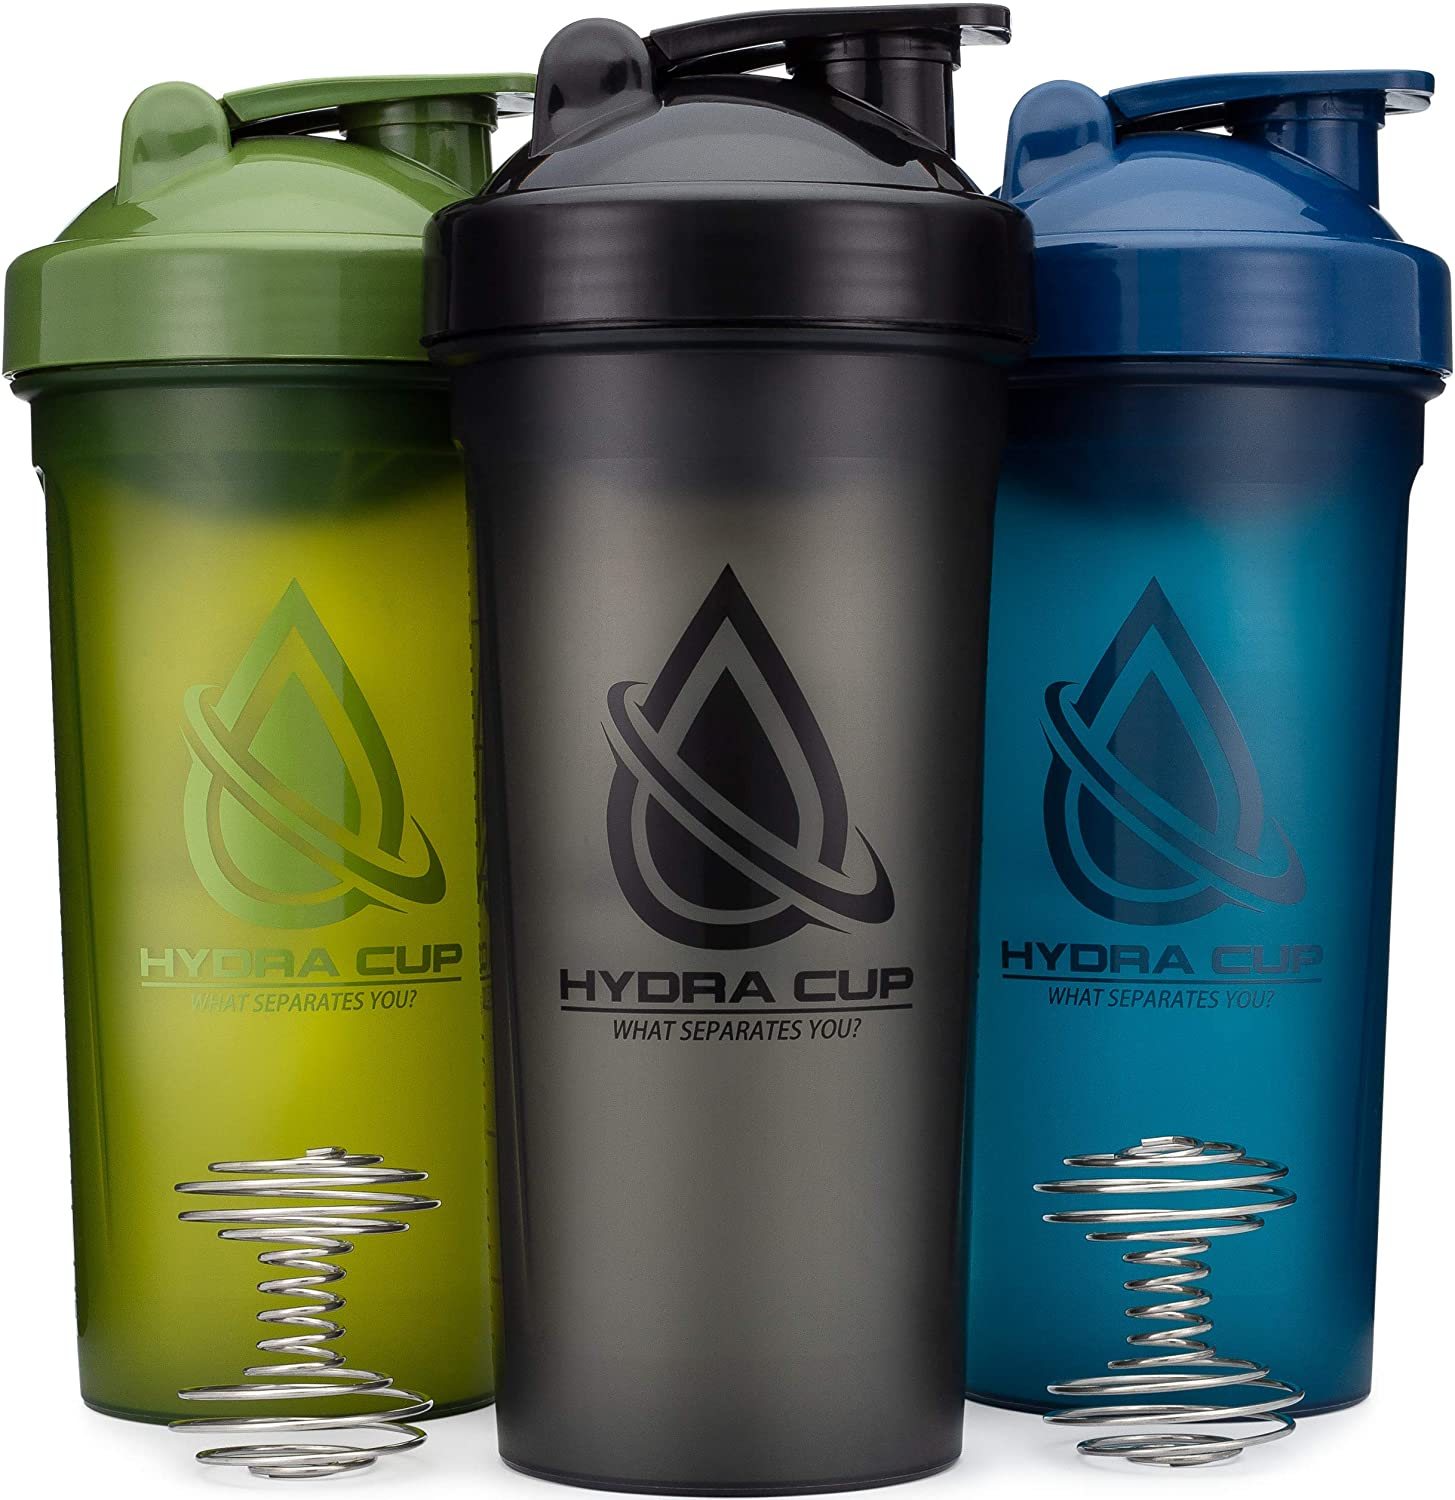 3 PACK - Extra Large Shaker Bottle, 45-Ounce Shaker Cup with Dual Mixers for Blending Protein, from Hydra Cup